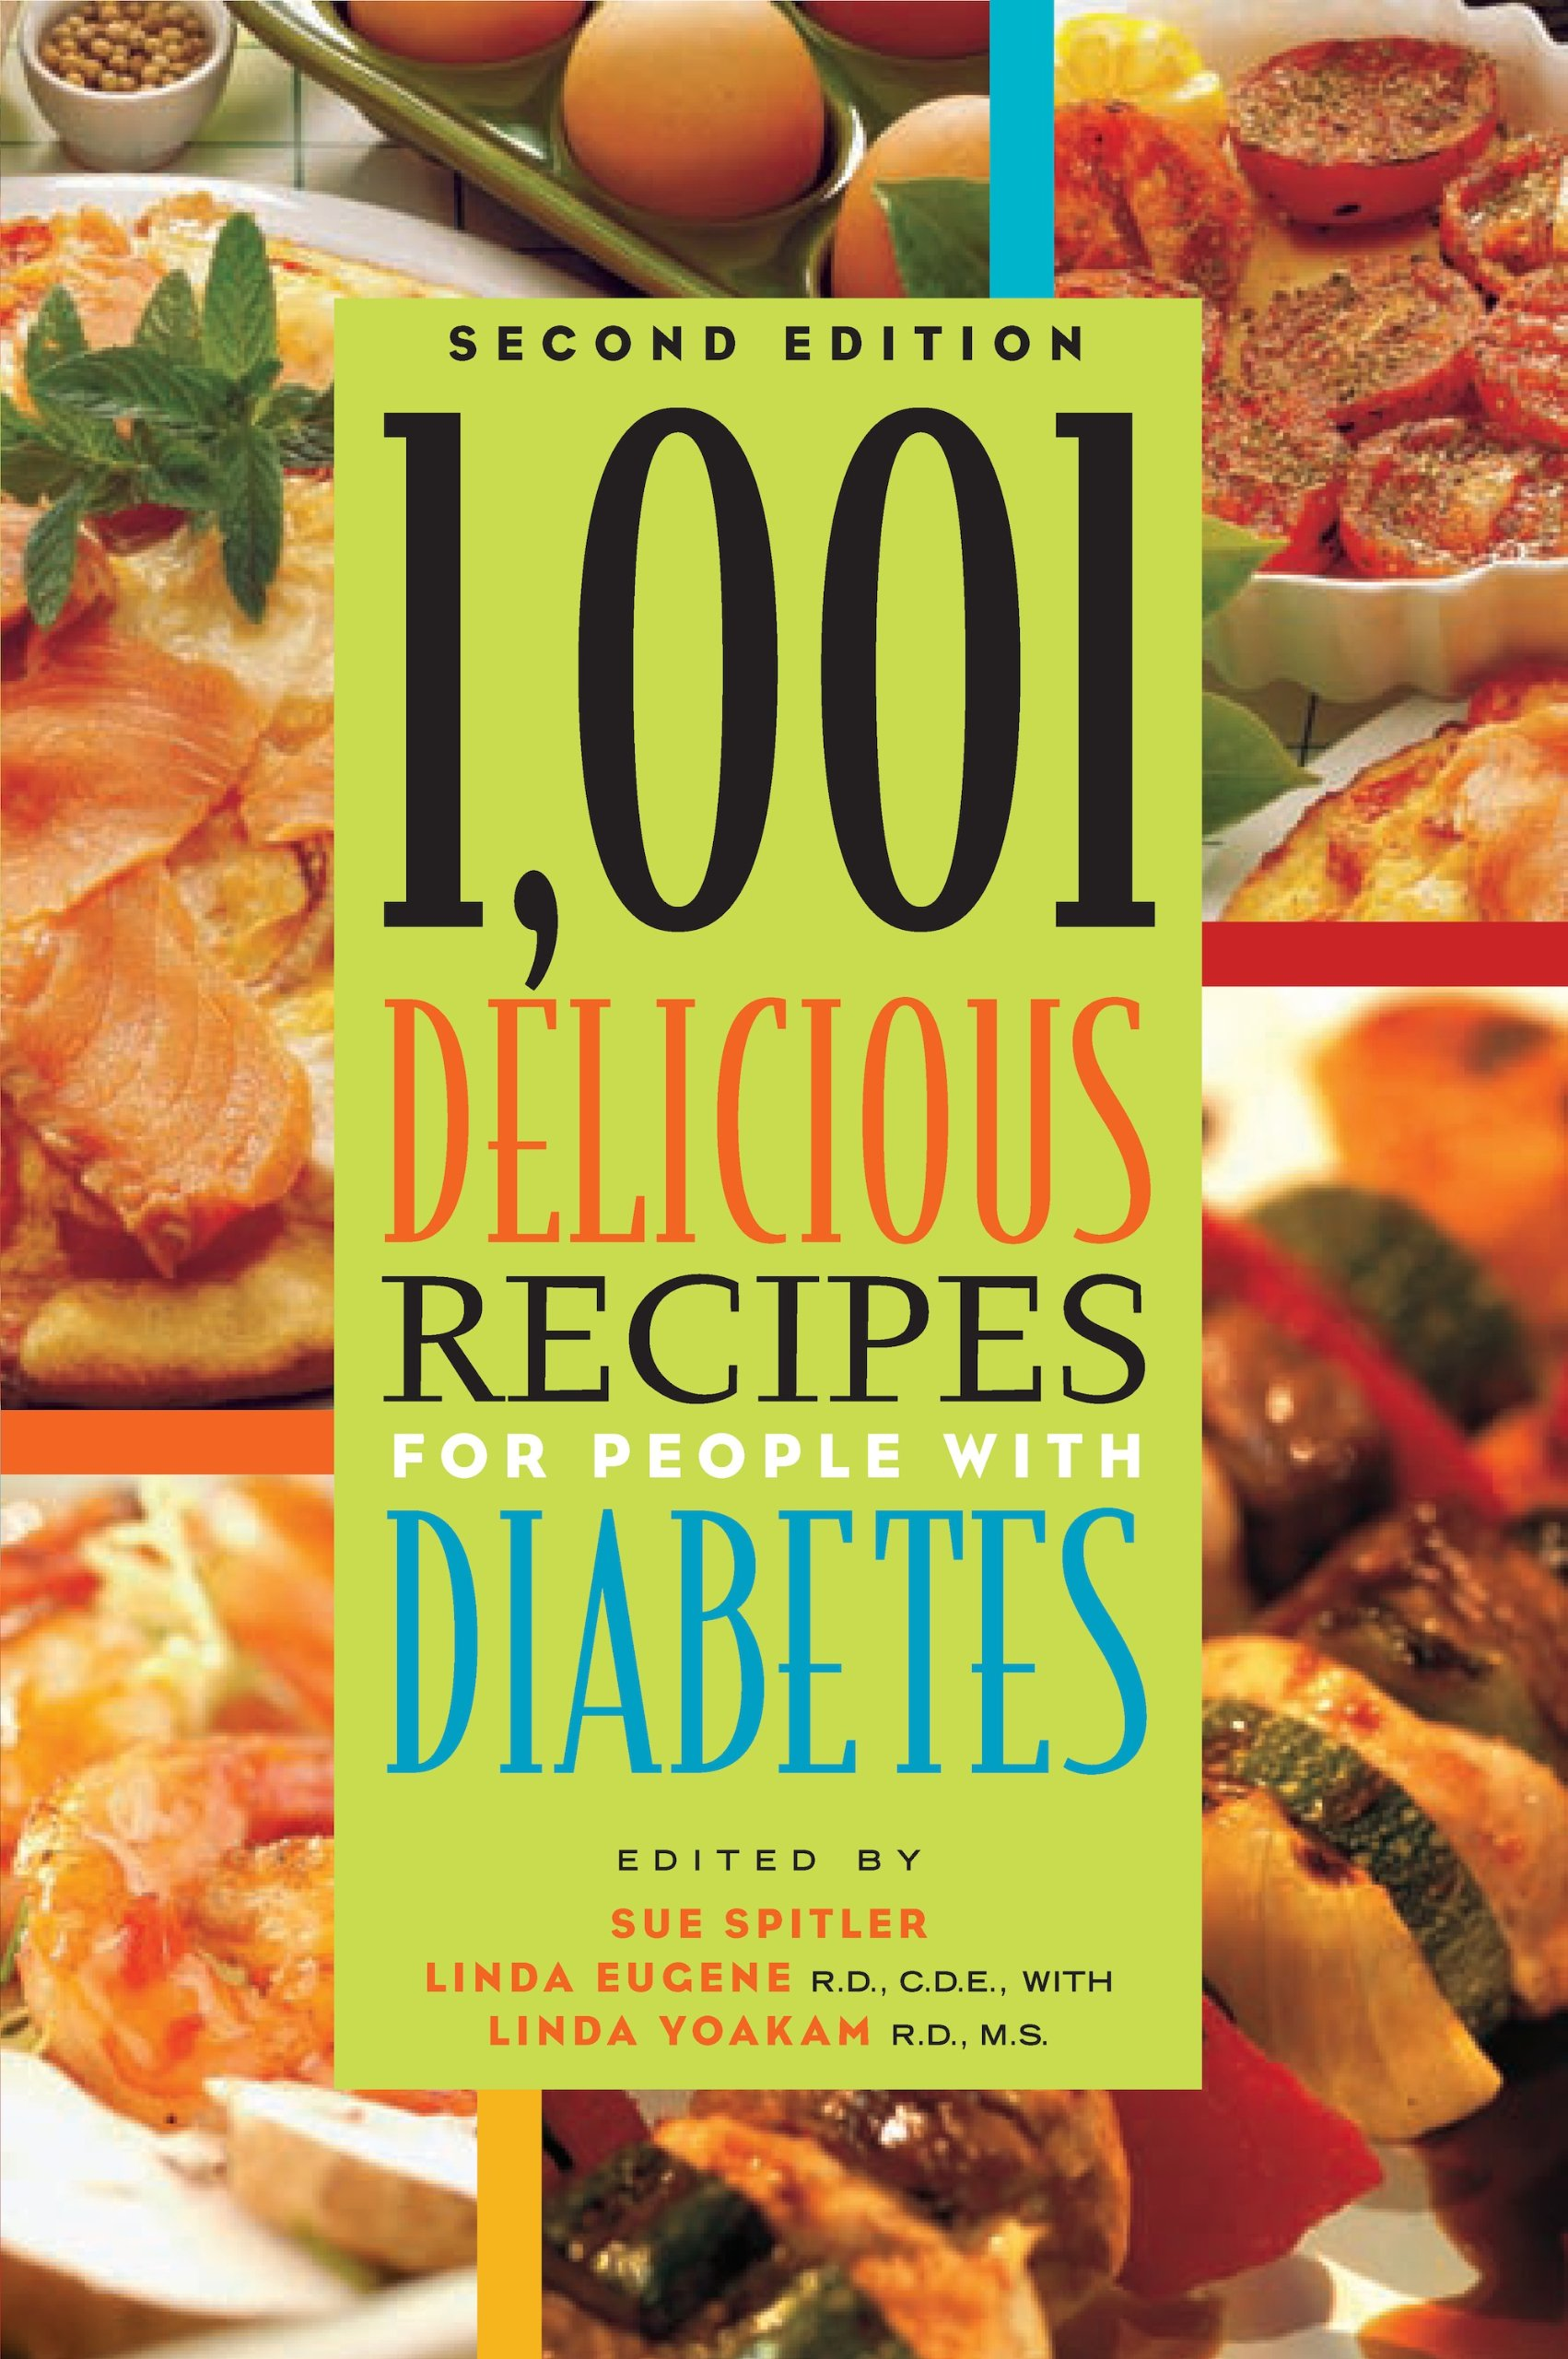 1, 001 Delicious Recipes for People with Diabetes: C.D.E. Linda Eugene  R.D., Sue Spitler, R.D. Linda R. Yoakam: 9781572840867: Amazon.com: Books